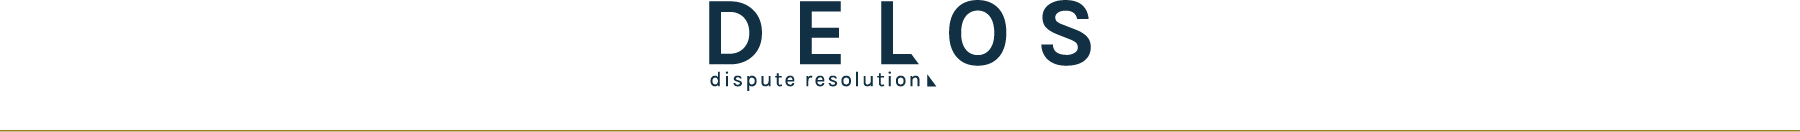 Delos is an international arbitration institution that provides an innovative approach to commercial dispute resolution.